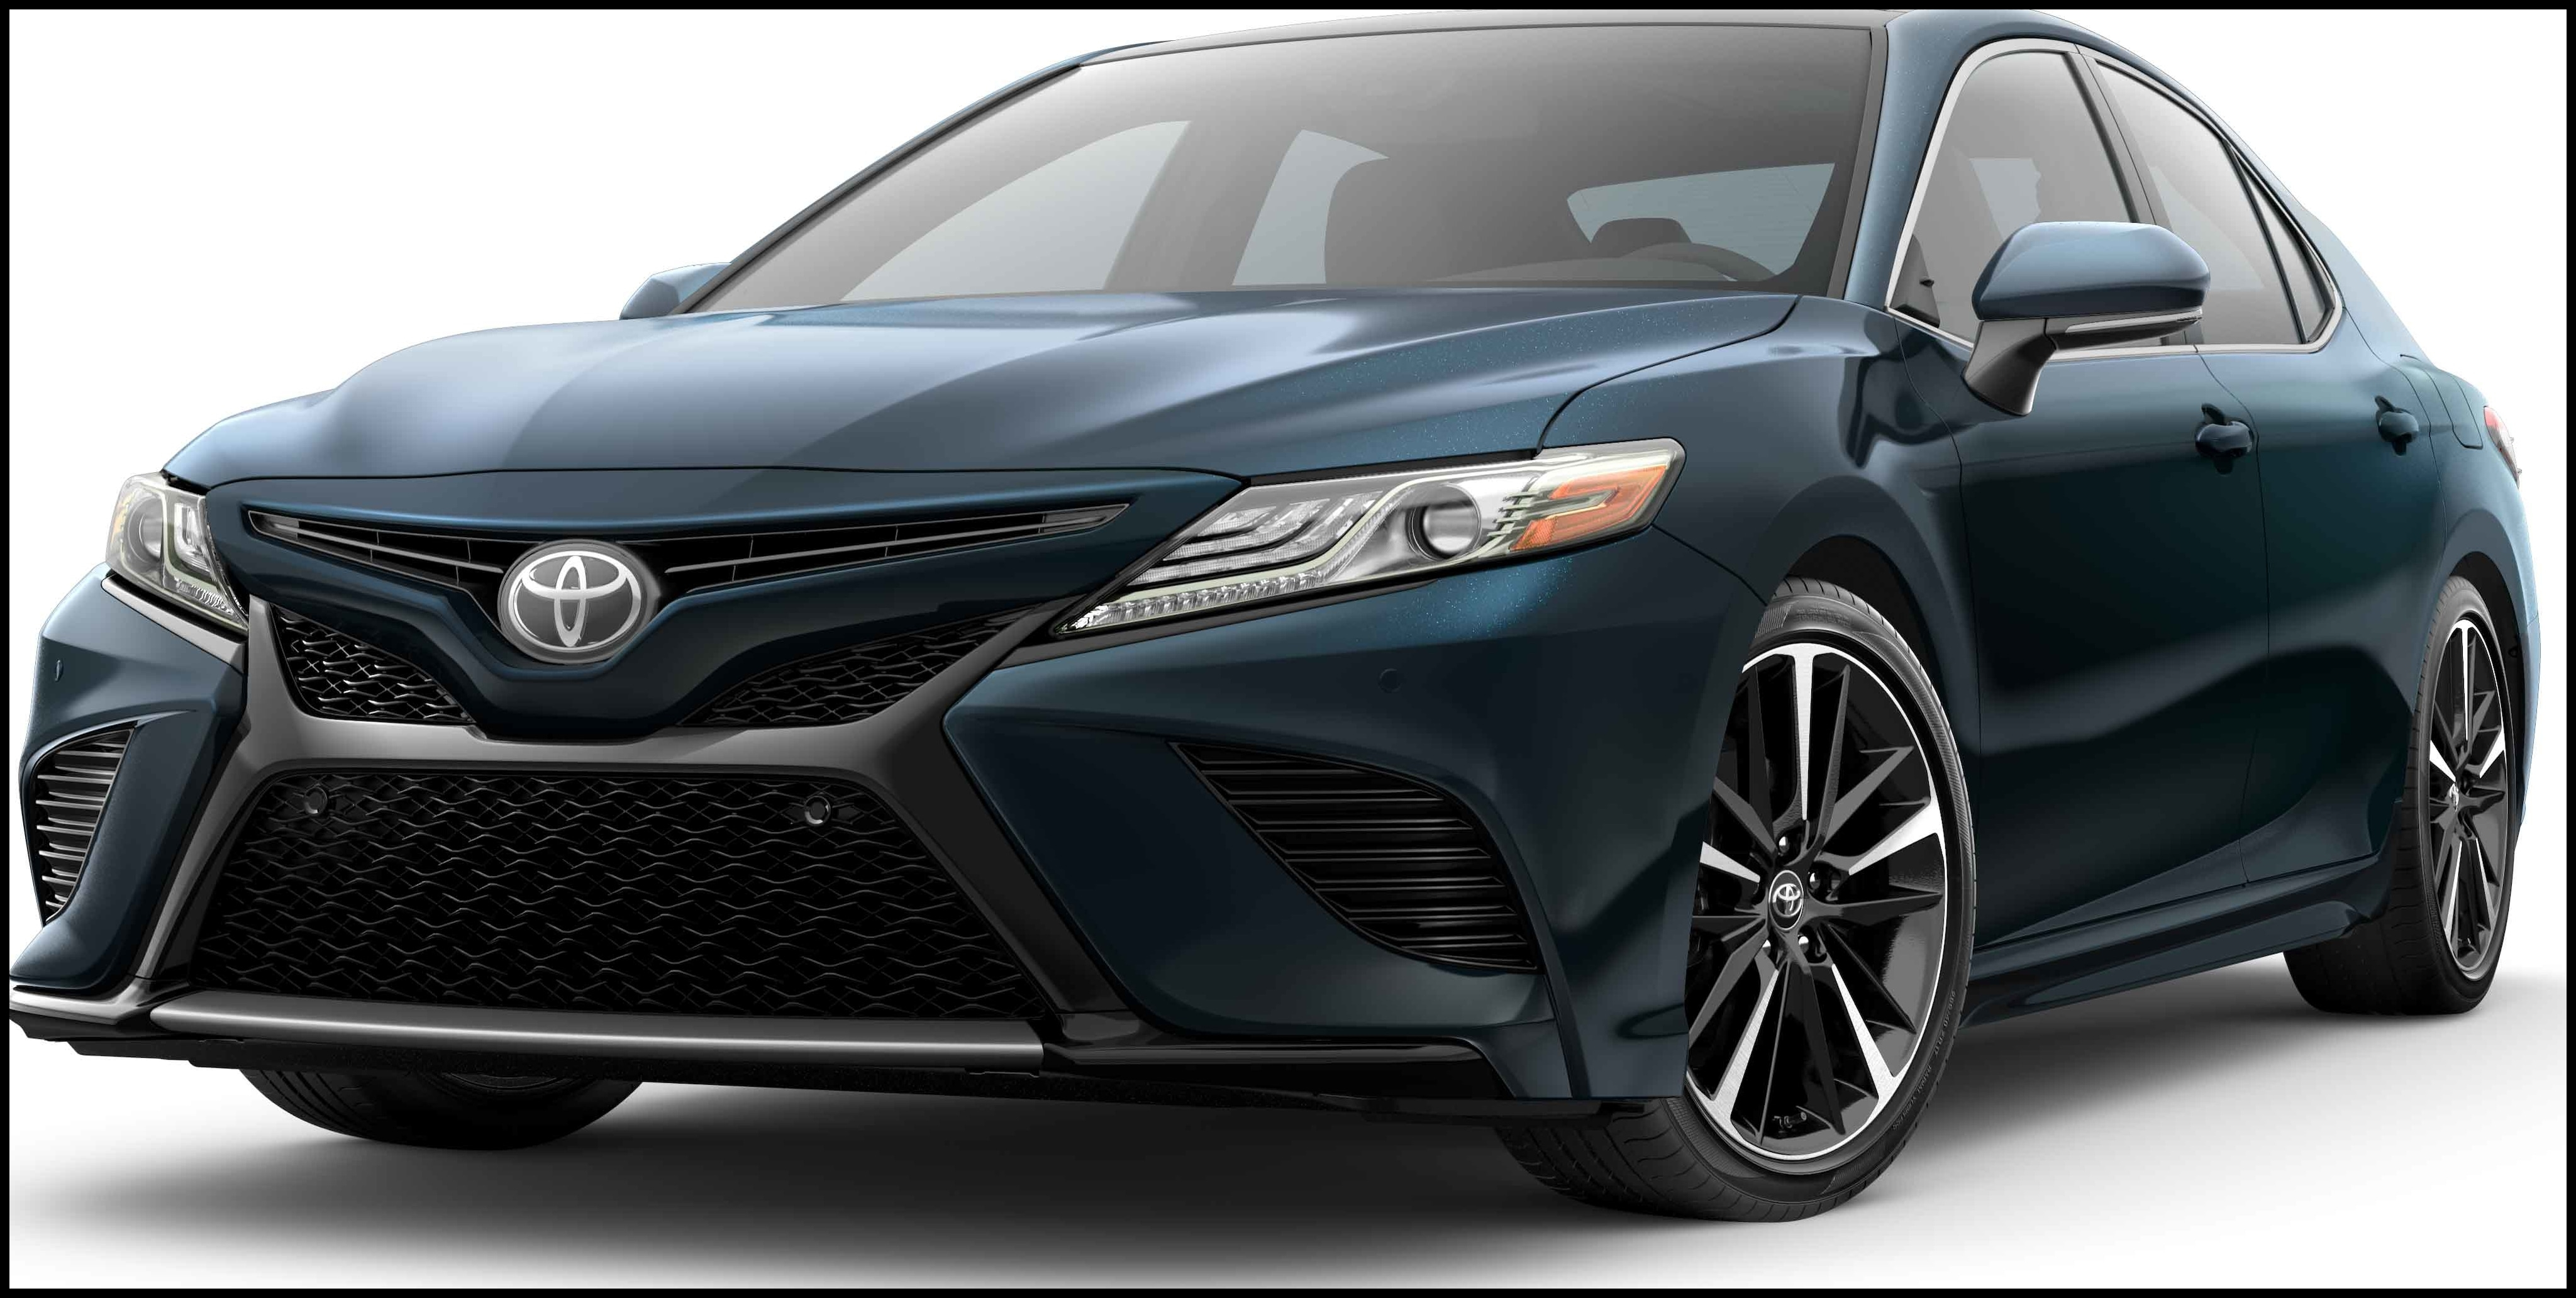 New Toyota Sales and Service From brand new Toyota in Fredericksburg VA